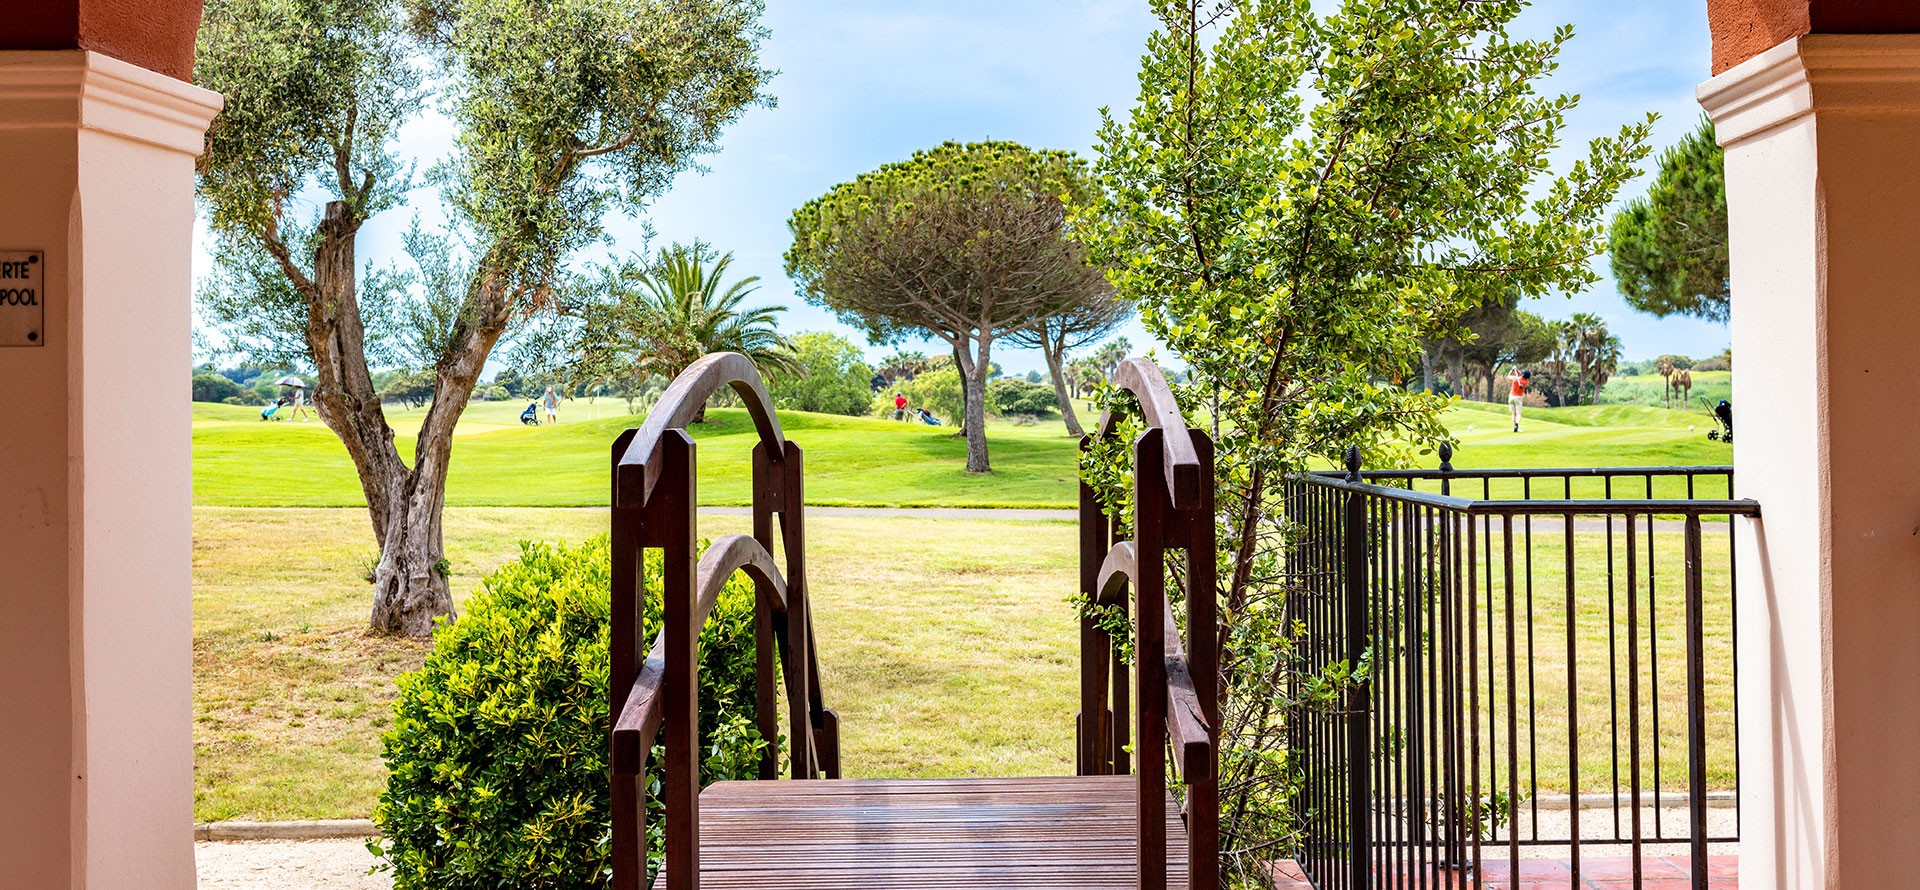 Die Lobby des 4-Sterne-Hotels Palmyra Golf in Le Cap d'Agde